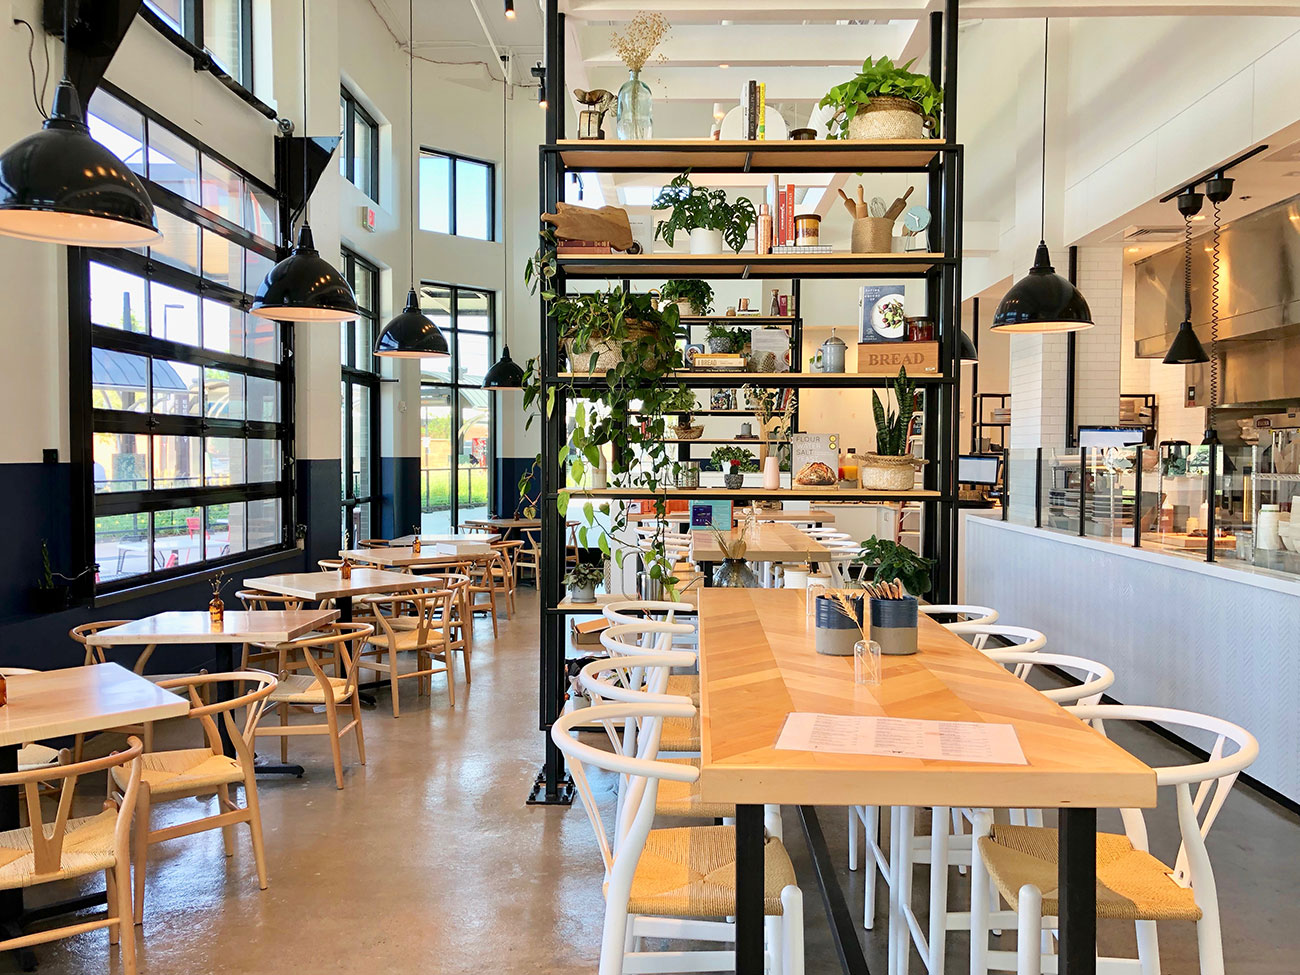 Eight+Sand, the new concept from the teams behind Inizio Pizza and Not Just Coffee, soft opens today — see full menu